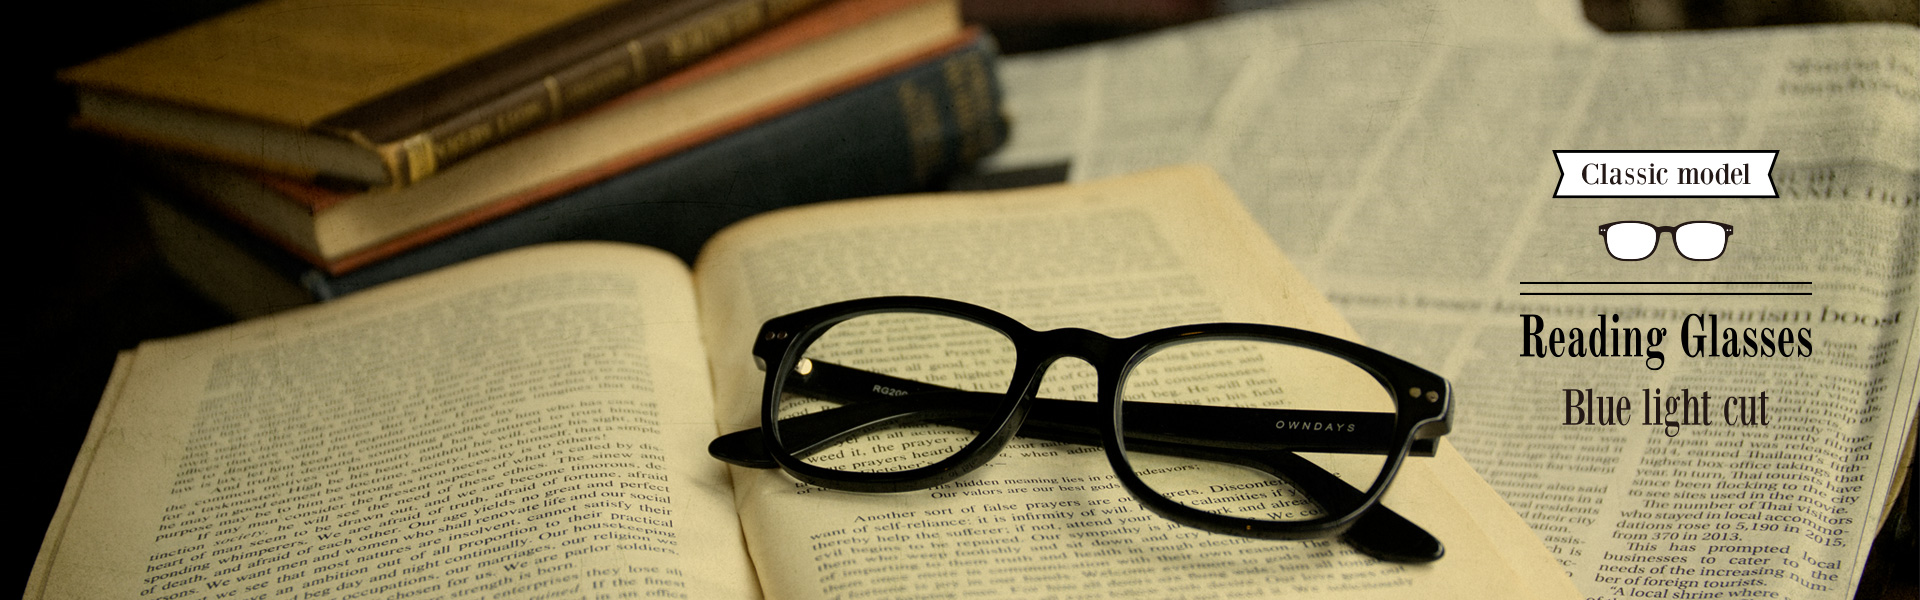 Reading Glasses Classic Model